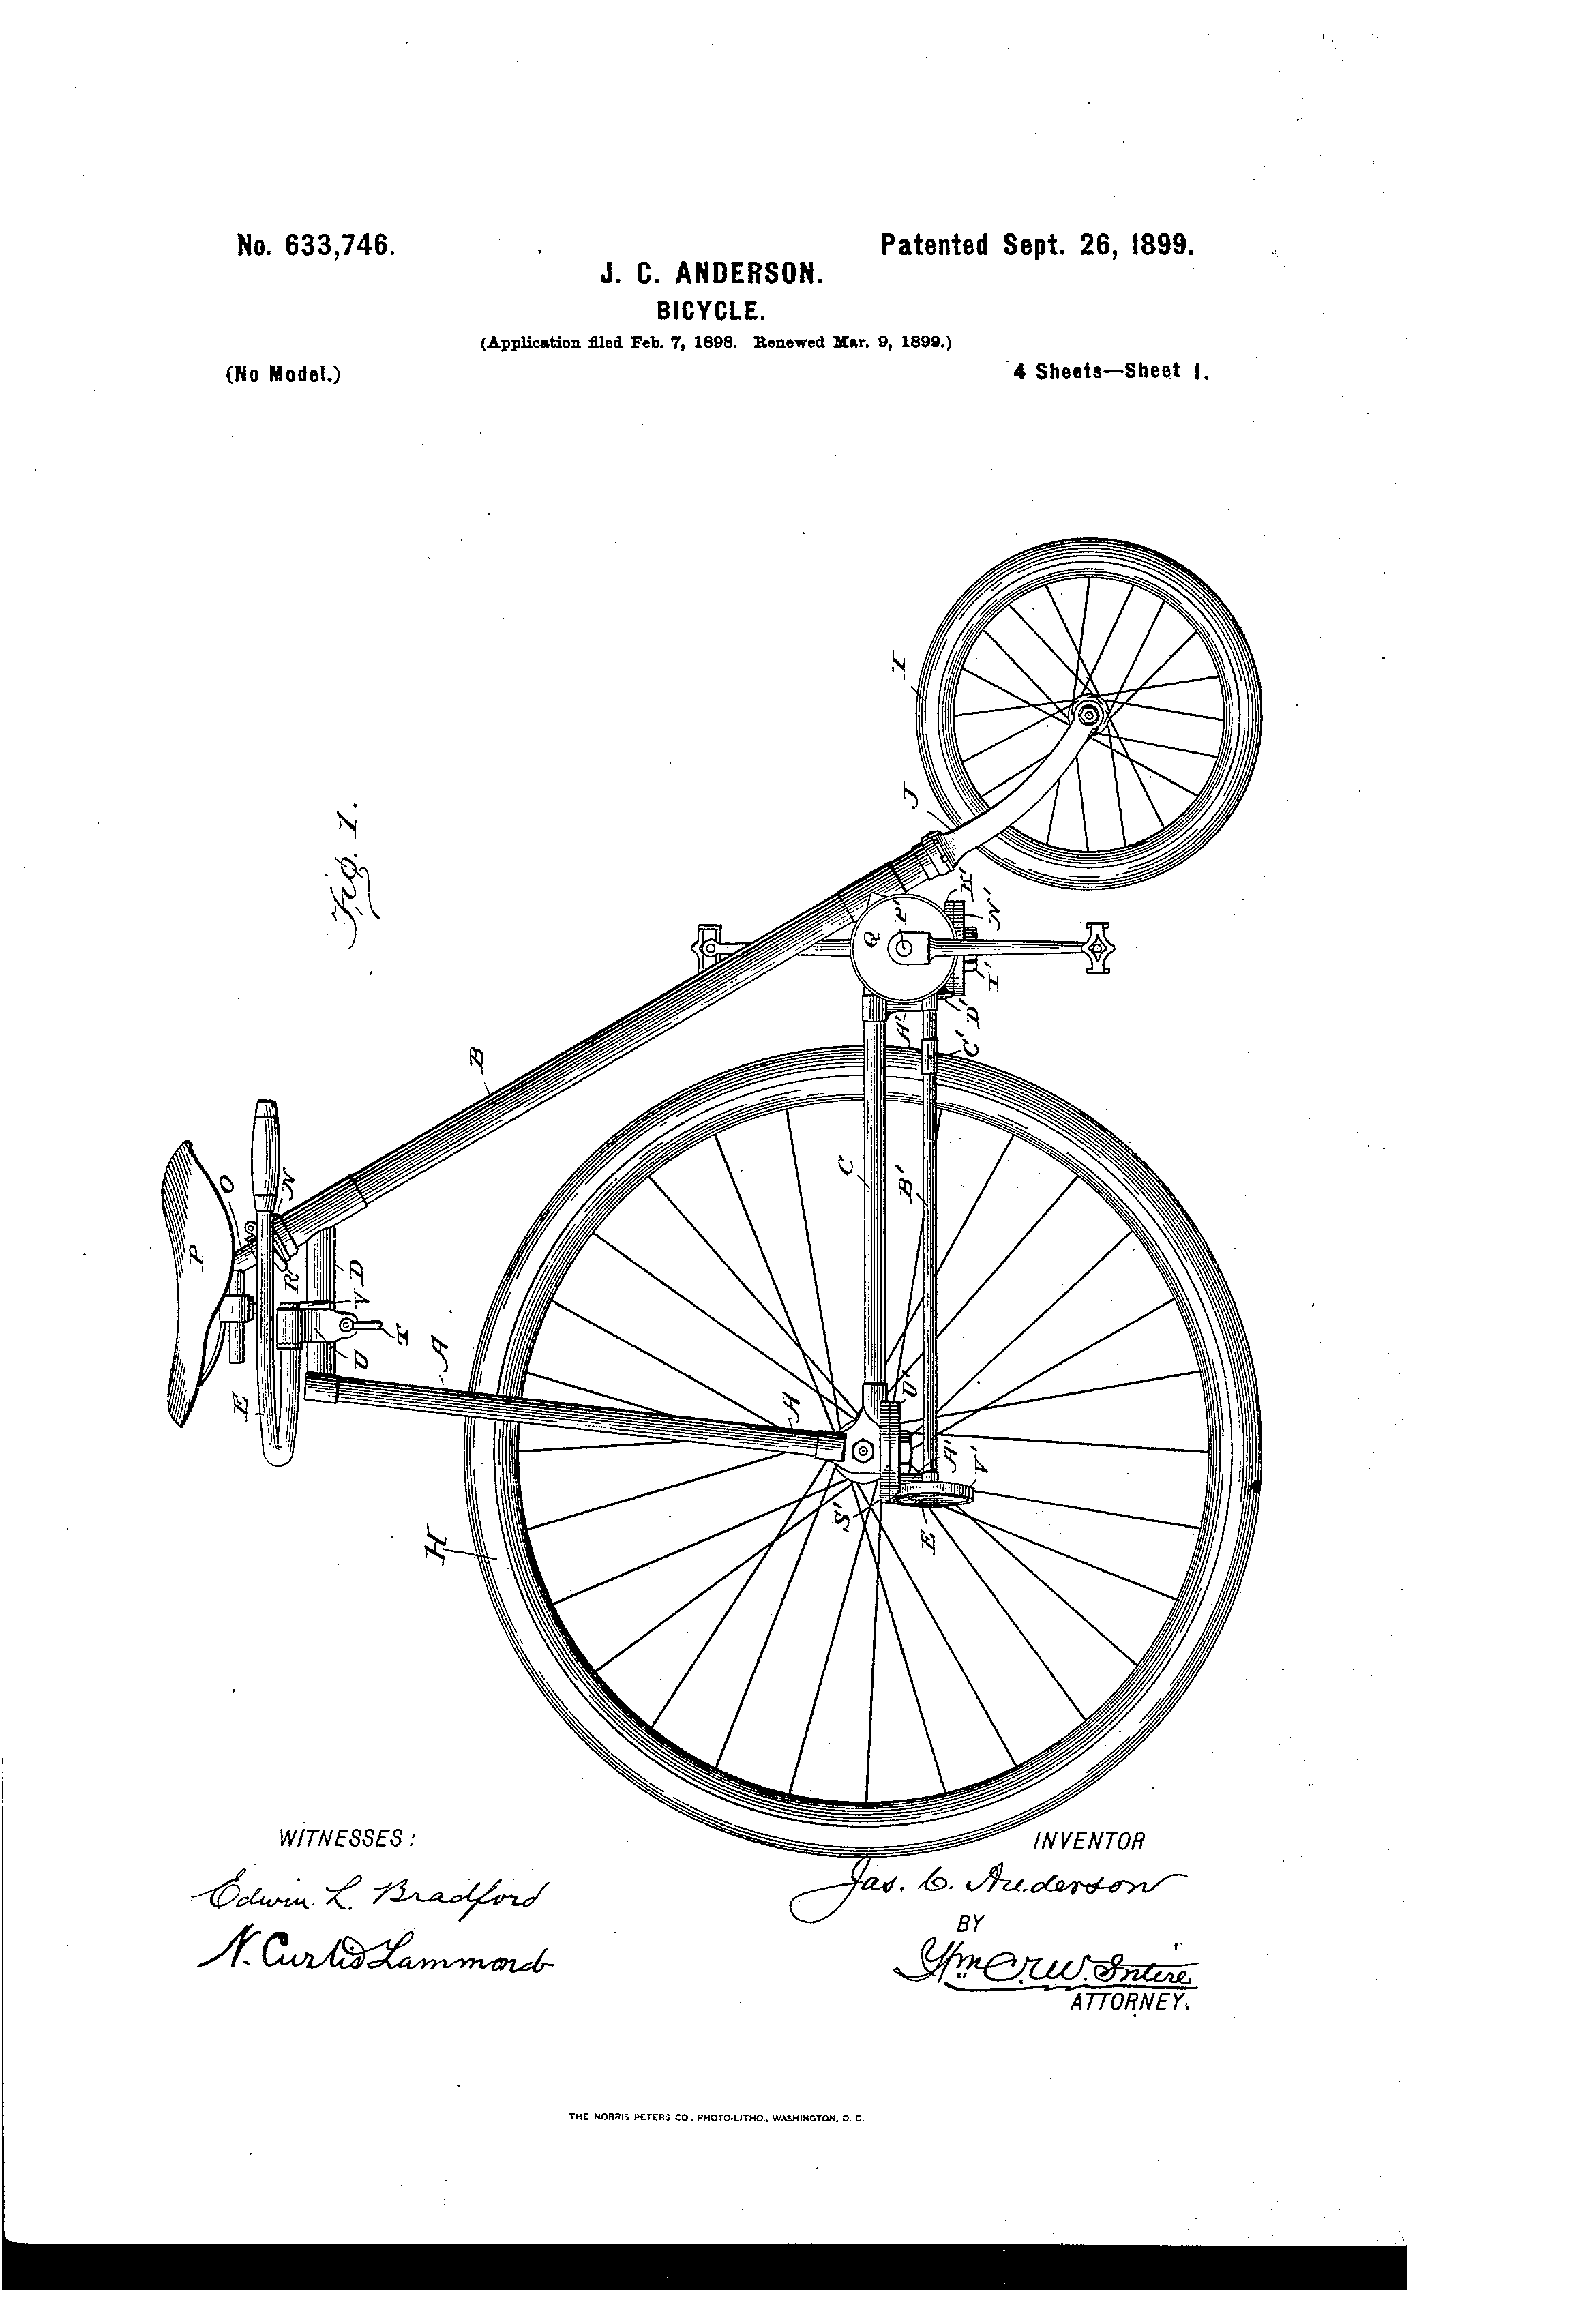 Detailed Bike Diagrams For Inventor Wiring Diagram Master Blogs Mountain Patent Drawing Patentdrawing In 2018 Pinterest Rh Com Inventions